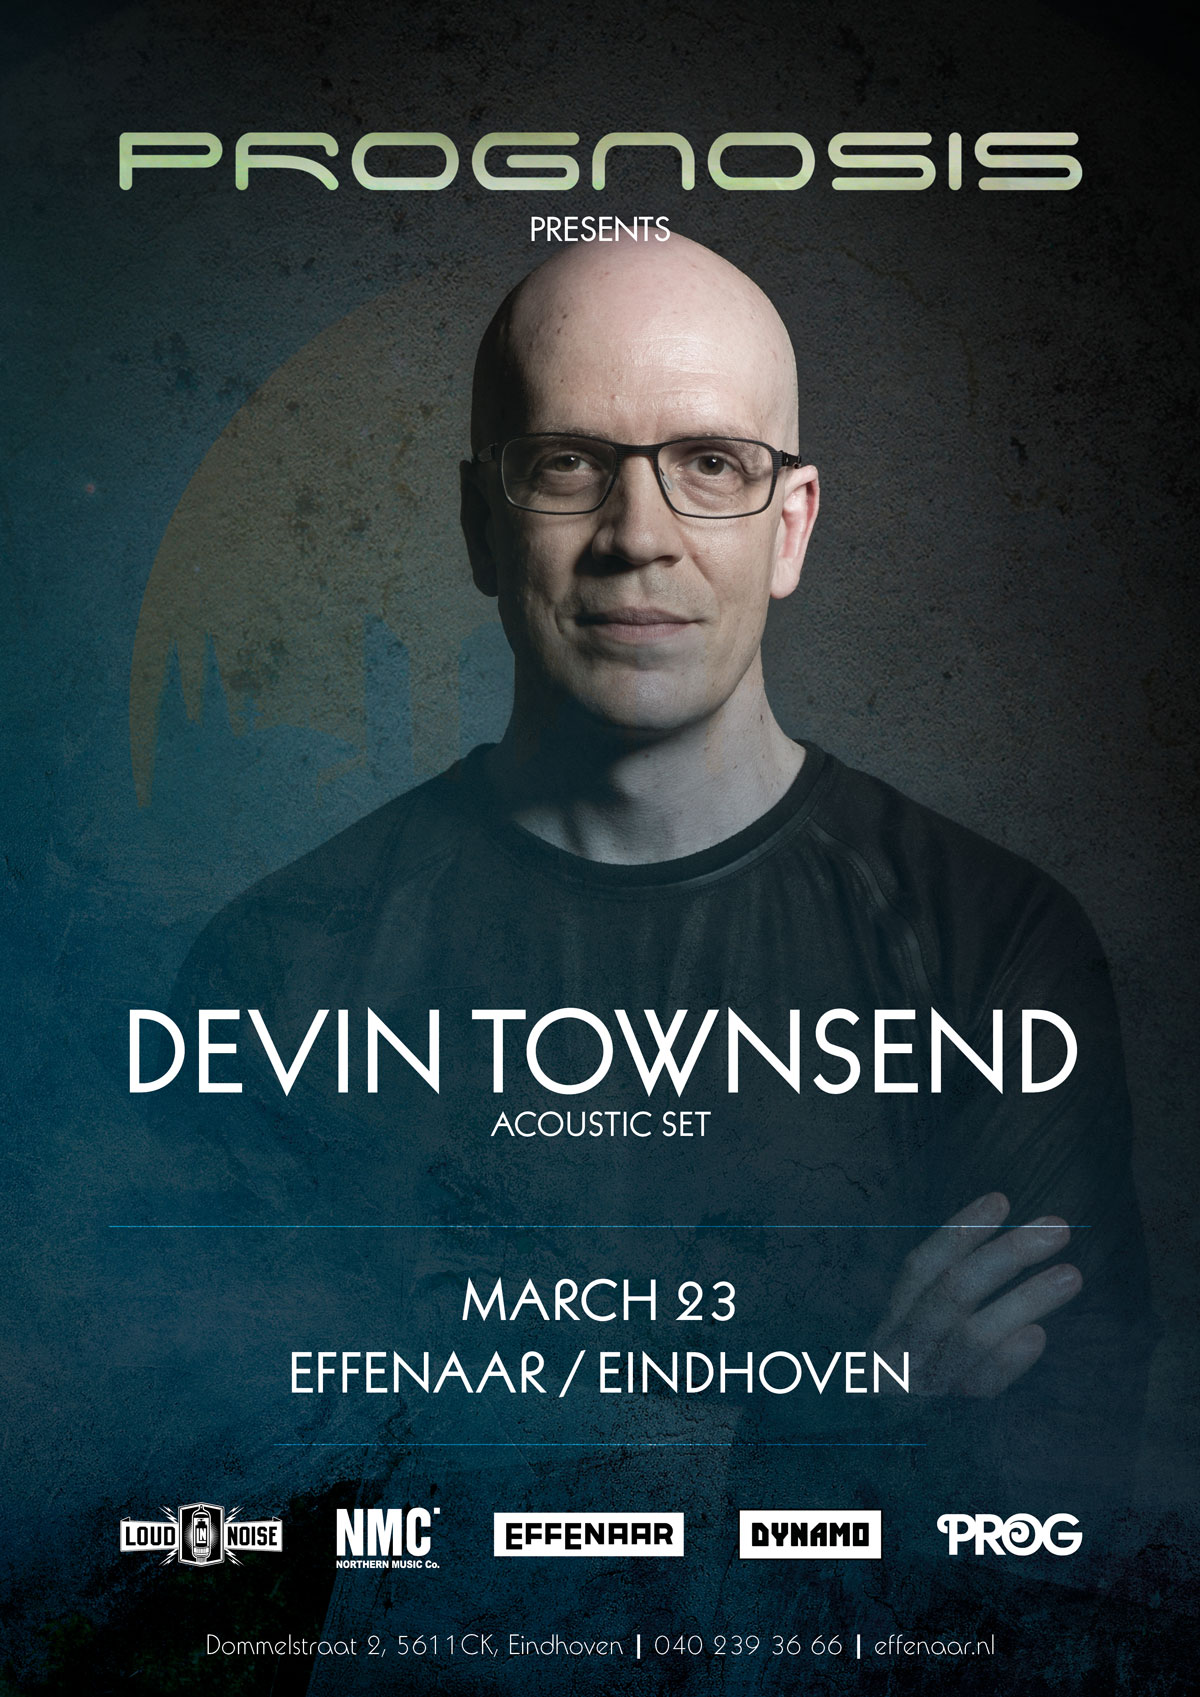 Devin Townsend to perform at Prognosis Festival | Louder